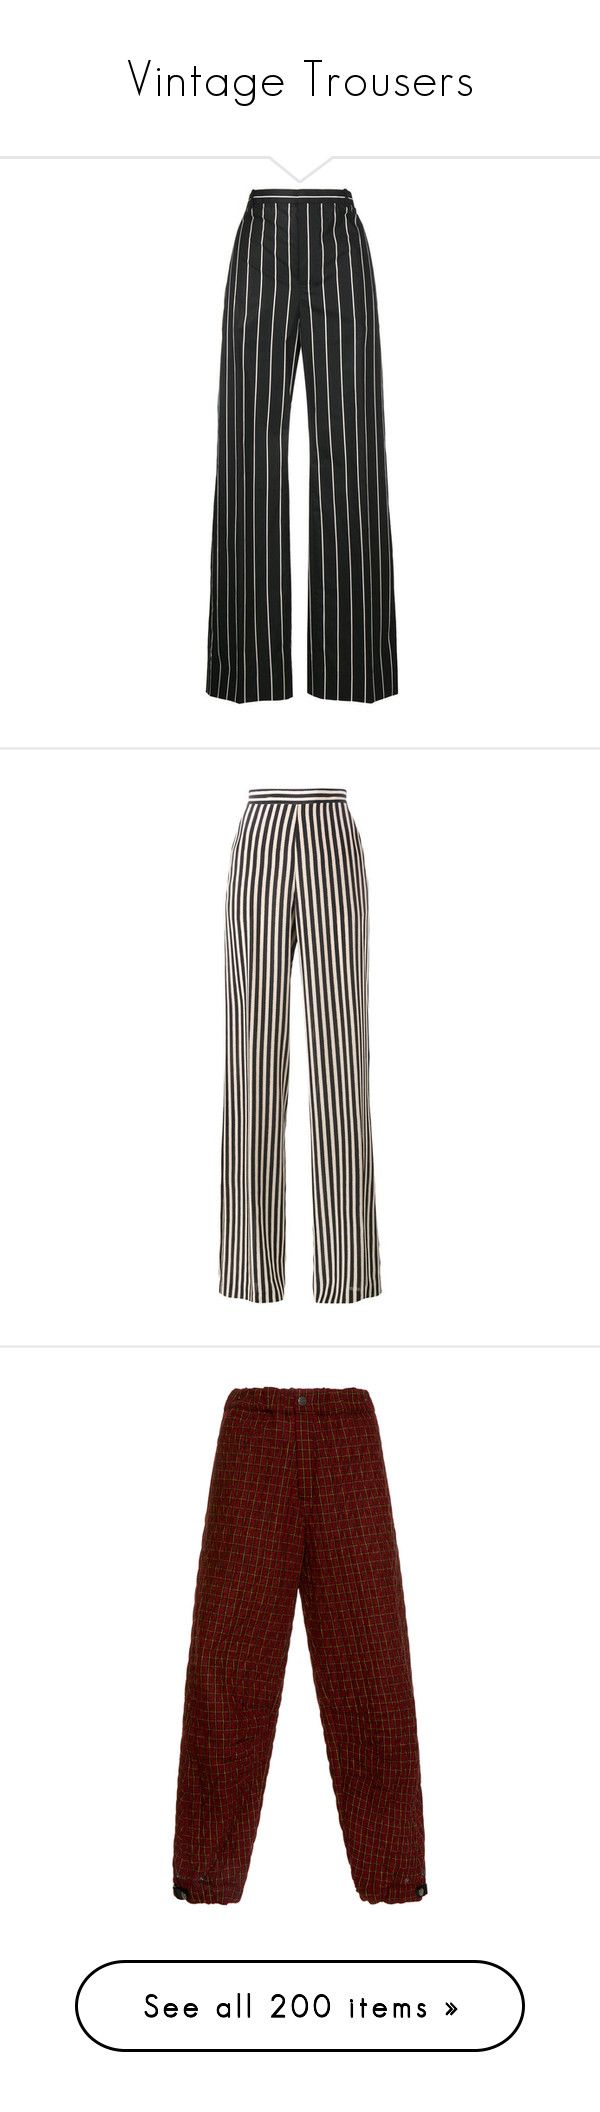 """""""Vintage Trousers"""" by mickjaggerismydrug ❤ liked on Polyvore featuring pants, trousers, bottoms, balenciaga, jeans, black, striped wide leg pants, cotton pants, wide leg cotton pants and wide leg trousers"""